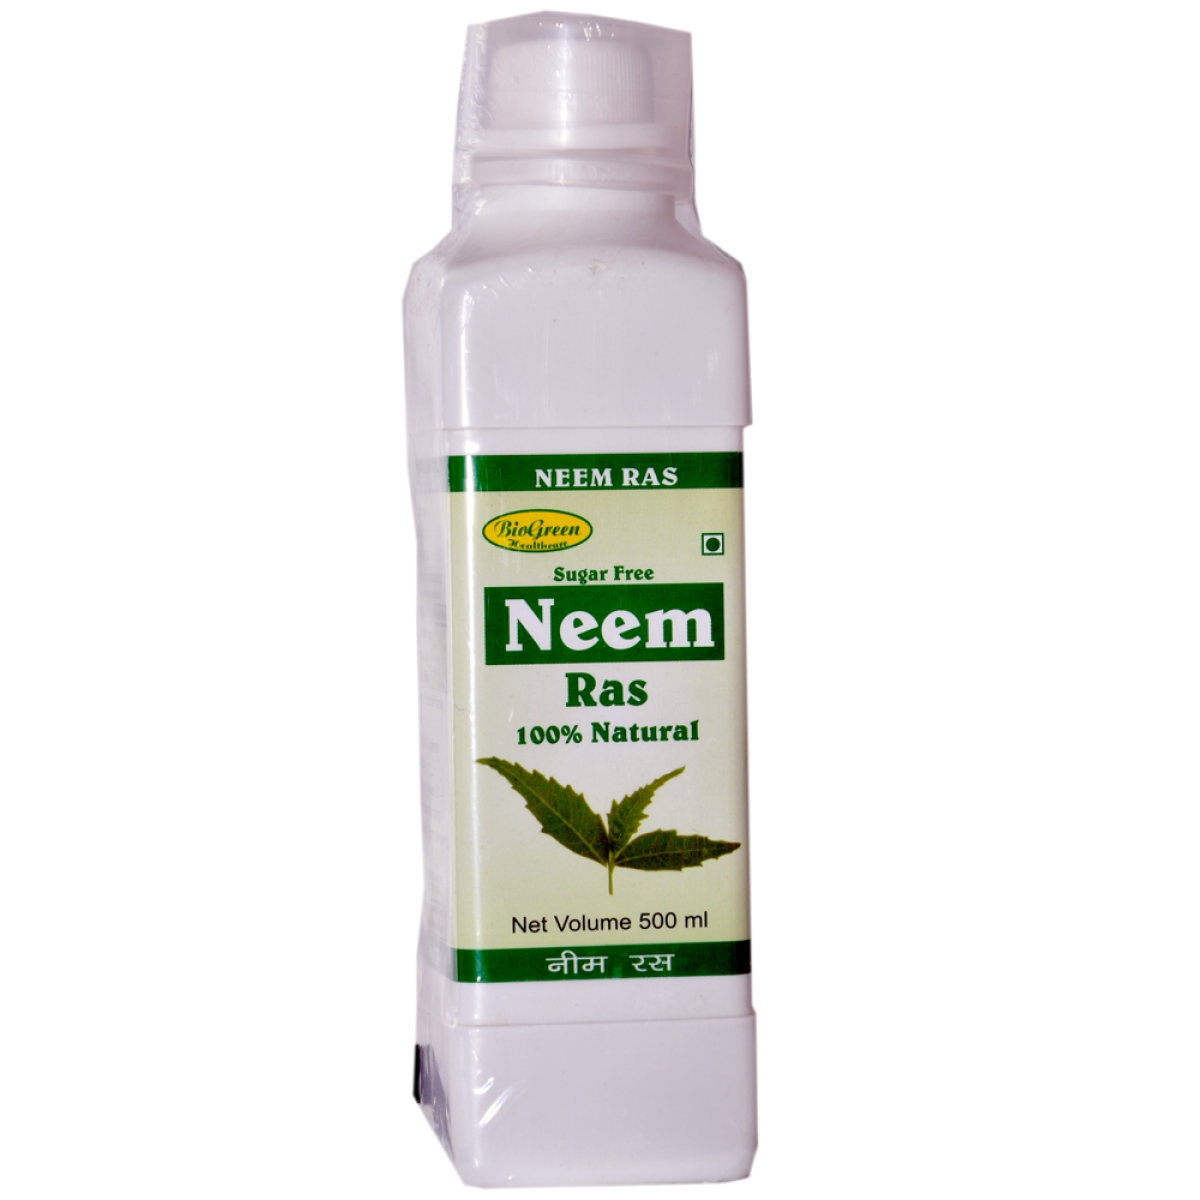 Neem Ras In East Godavari